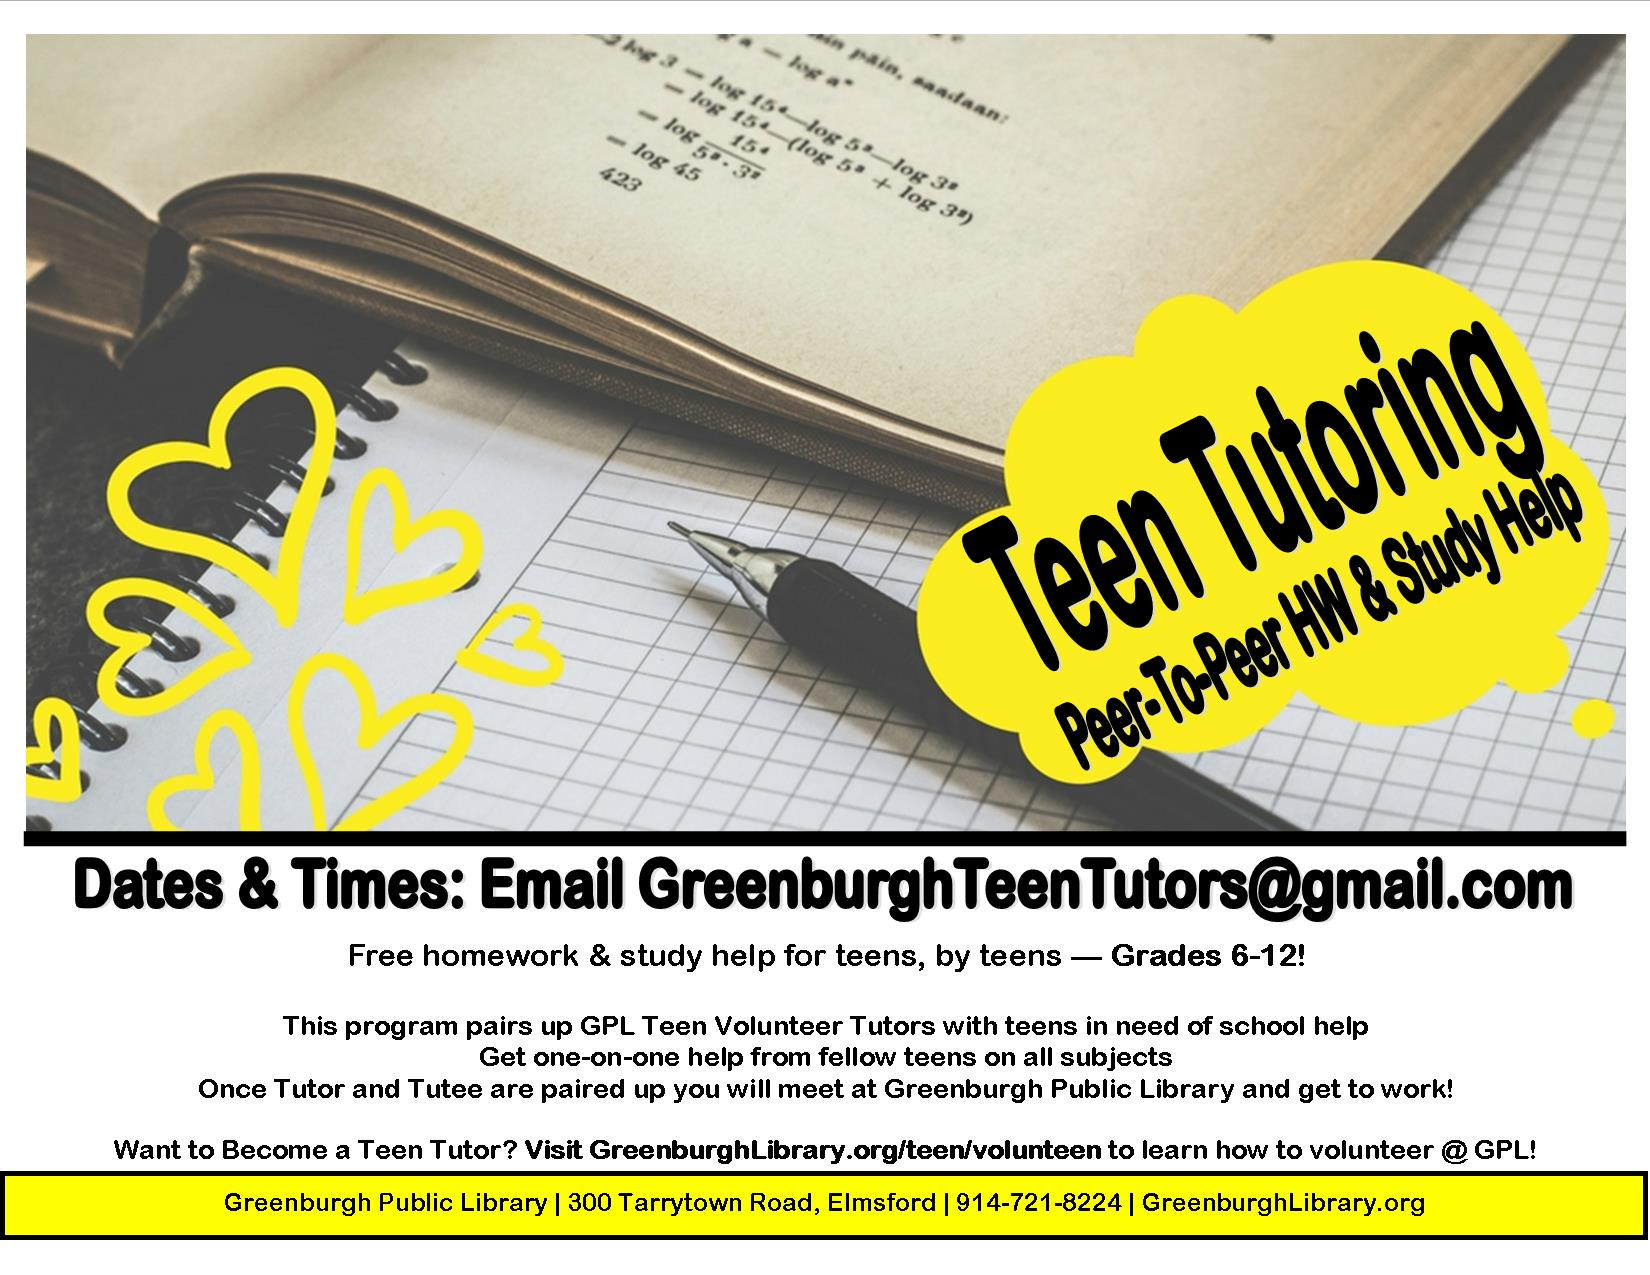 VIRTUAL - Teen Tutoring: Peer-To-Peer Homework & Study Help